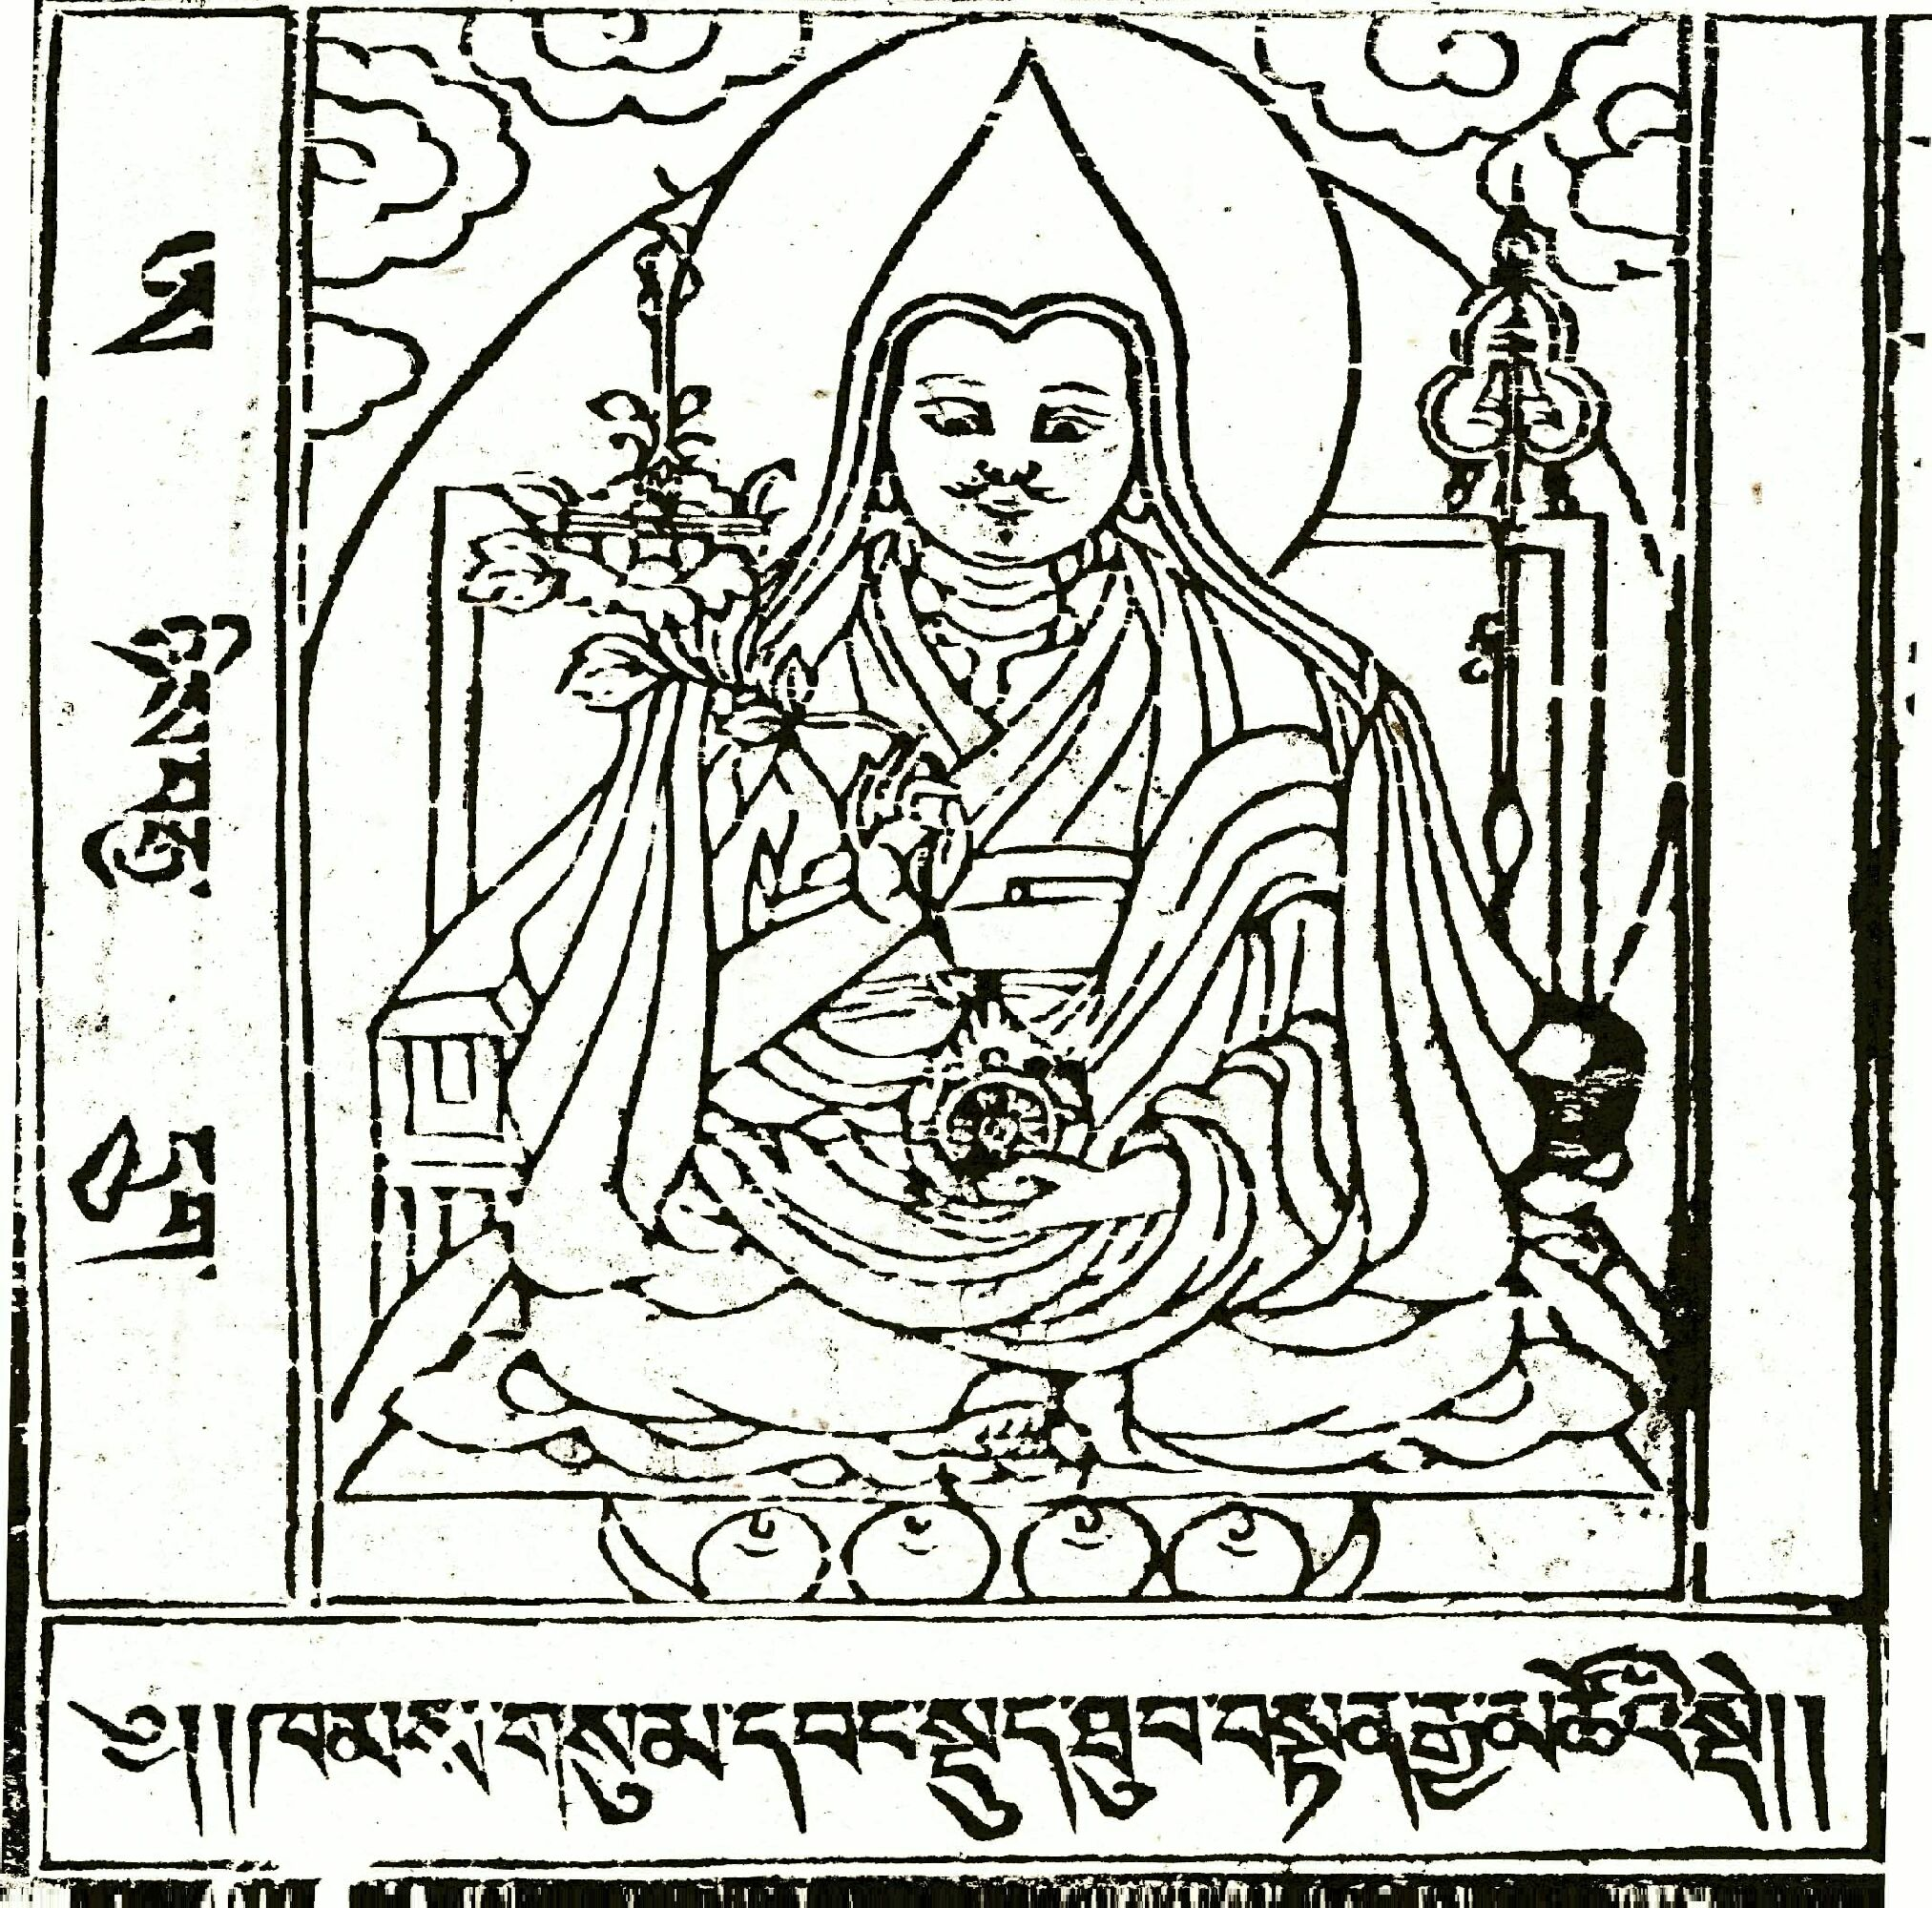 The Thirteenth Dalai Lama, Tubten Gyatso - The Treasury of Lives: A